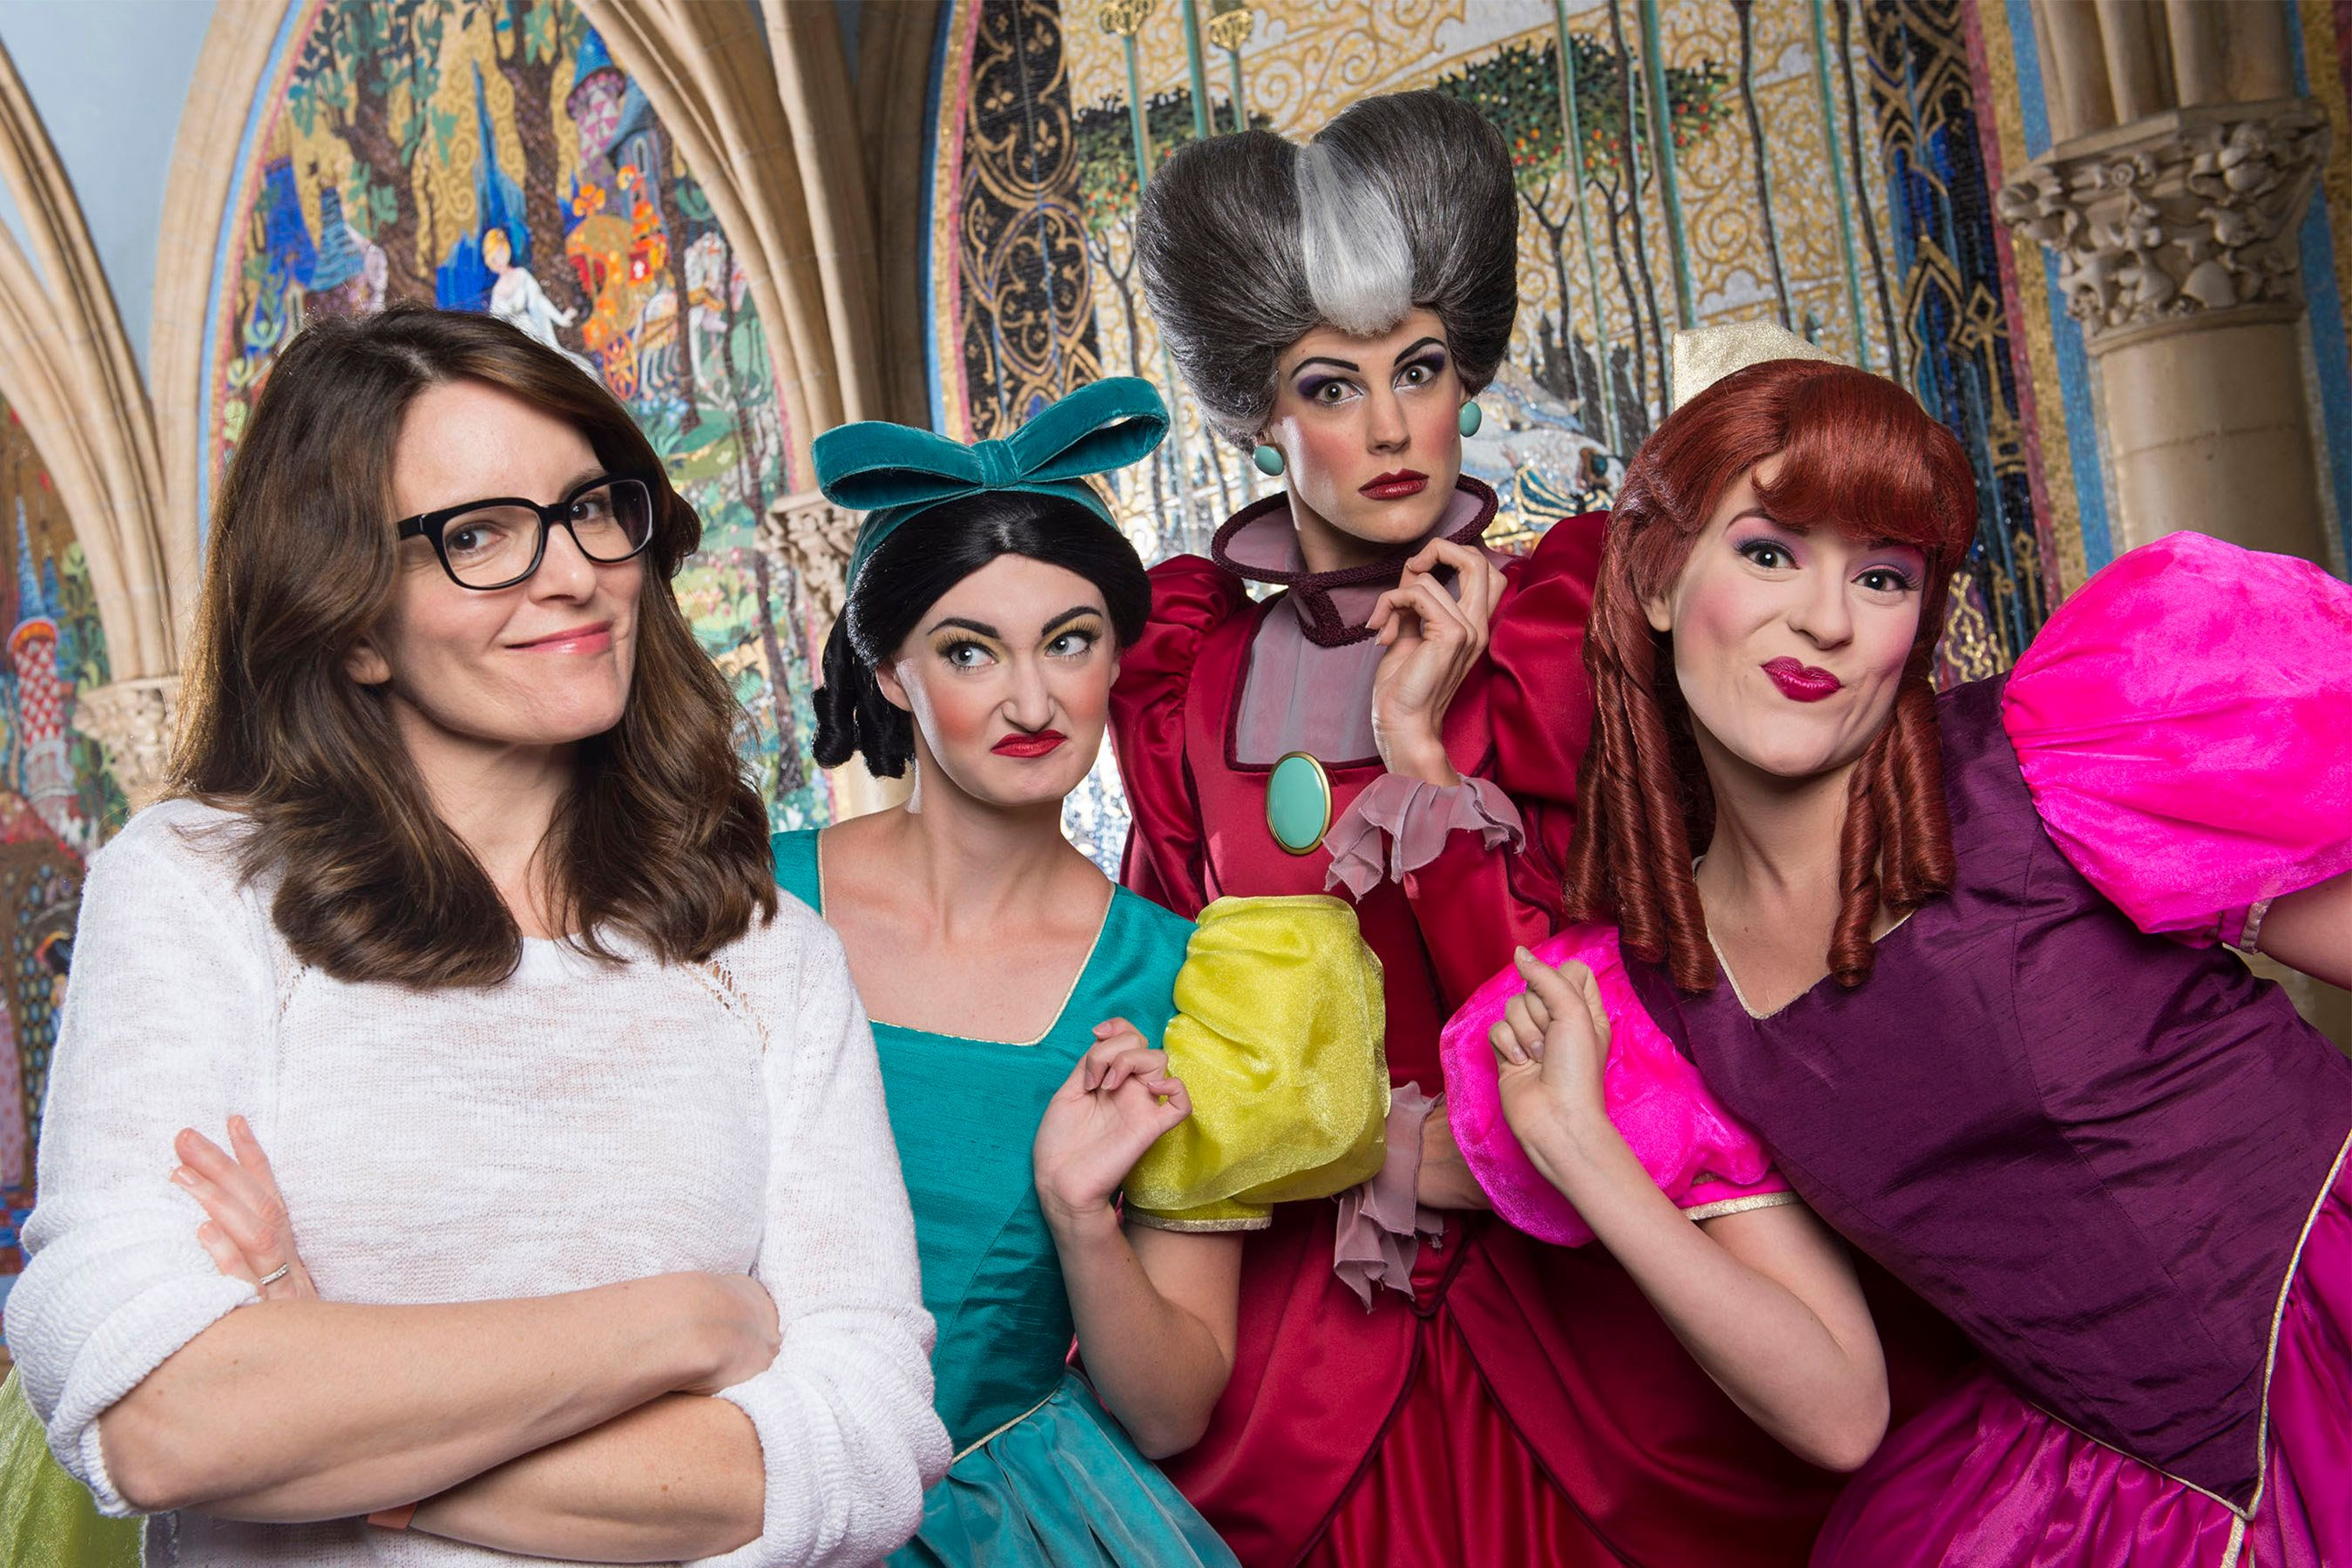 """(March 25, 2016): Emmy, Golden Globe, SAG and People's Choice award-winner Tina Fey poses with Disney's original mean girls, Cinderella's wicked stepmother and stepsisters, March 25, 2016 at Magic Kingdom Park in Lake Buena Vista, Fla. Fey vacationed at Walt Disney World while on break from working on the musical adaptation of the 2004 hit film, """"Mean Girls."""" (David Roark, photographer)"""